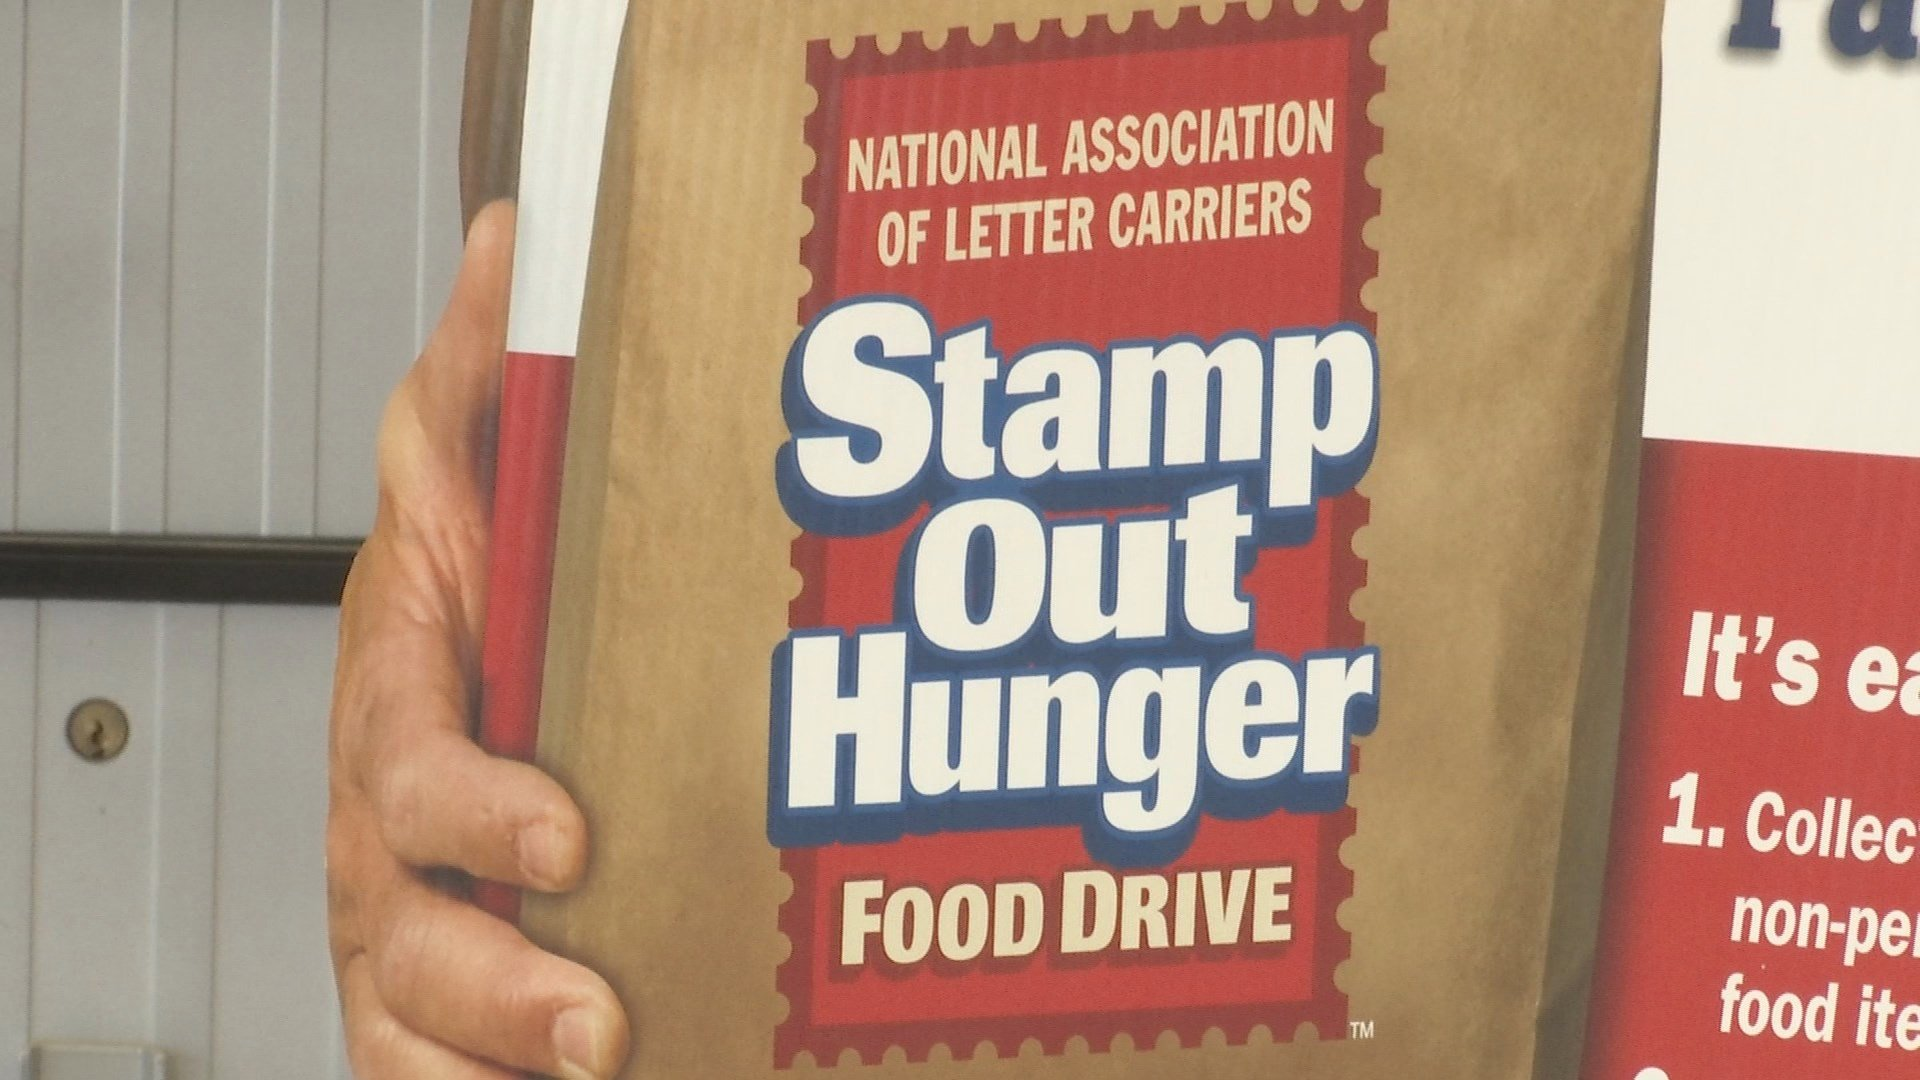 Stamp Out Hunger is Saturday, May 12th